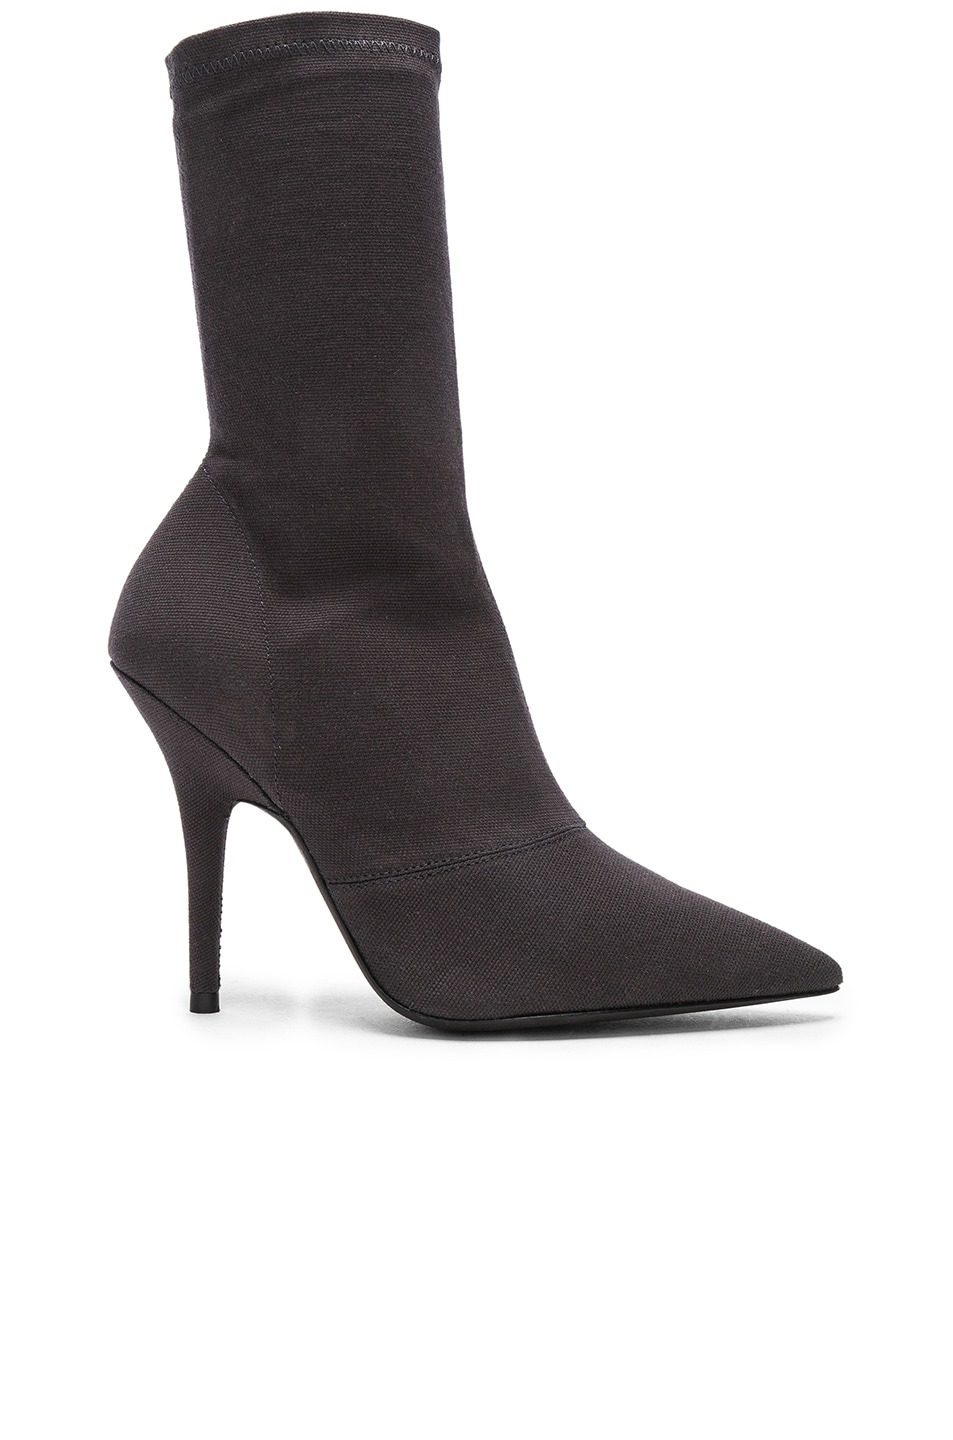 YEEZY SEASON 6 STRETCH CANVAS ANKLE BOOTS IN BLACK